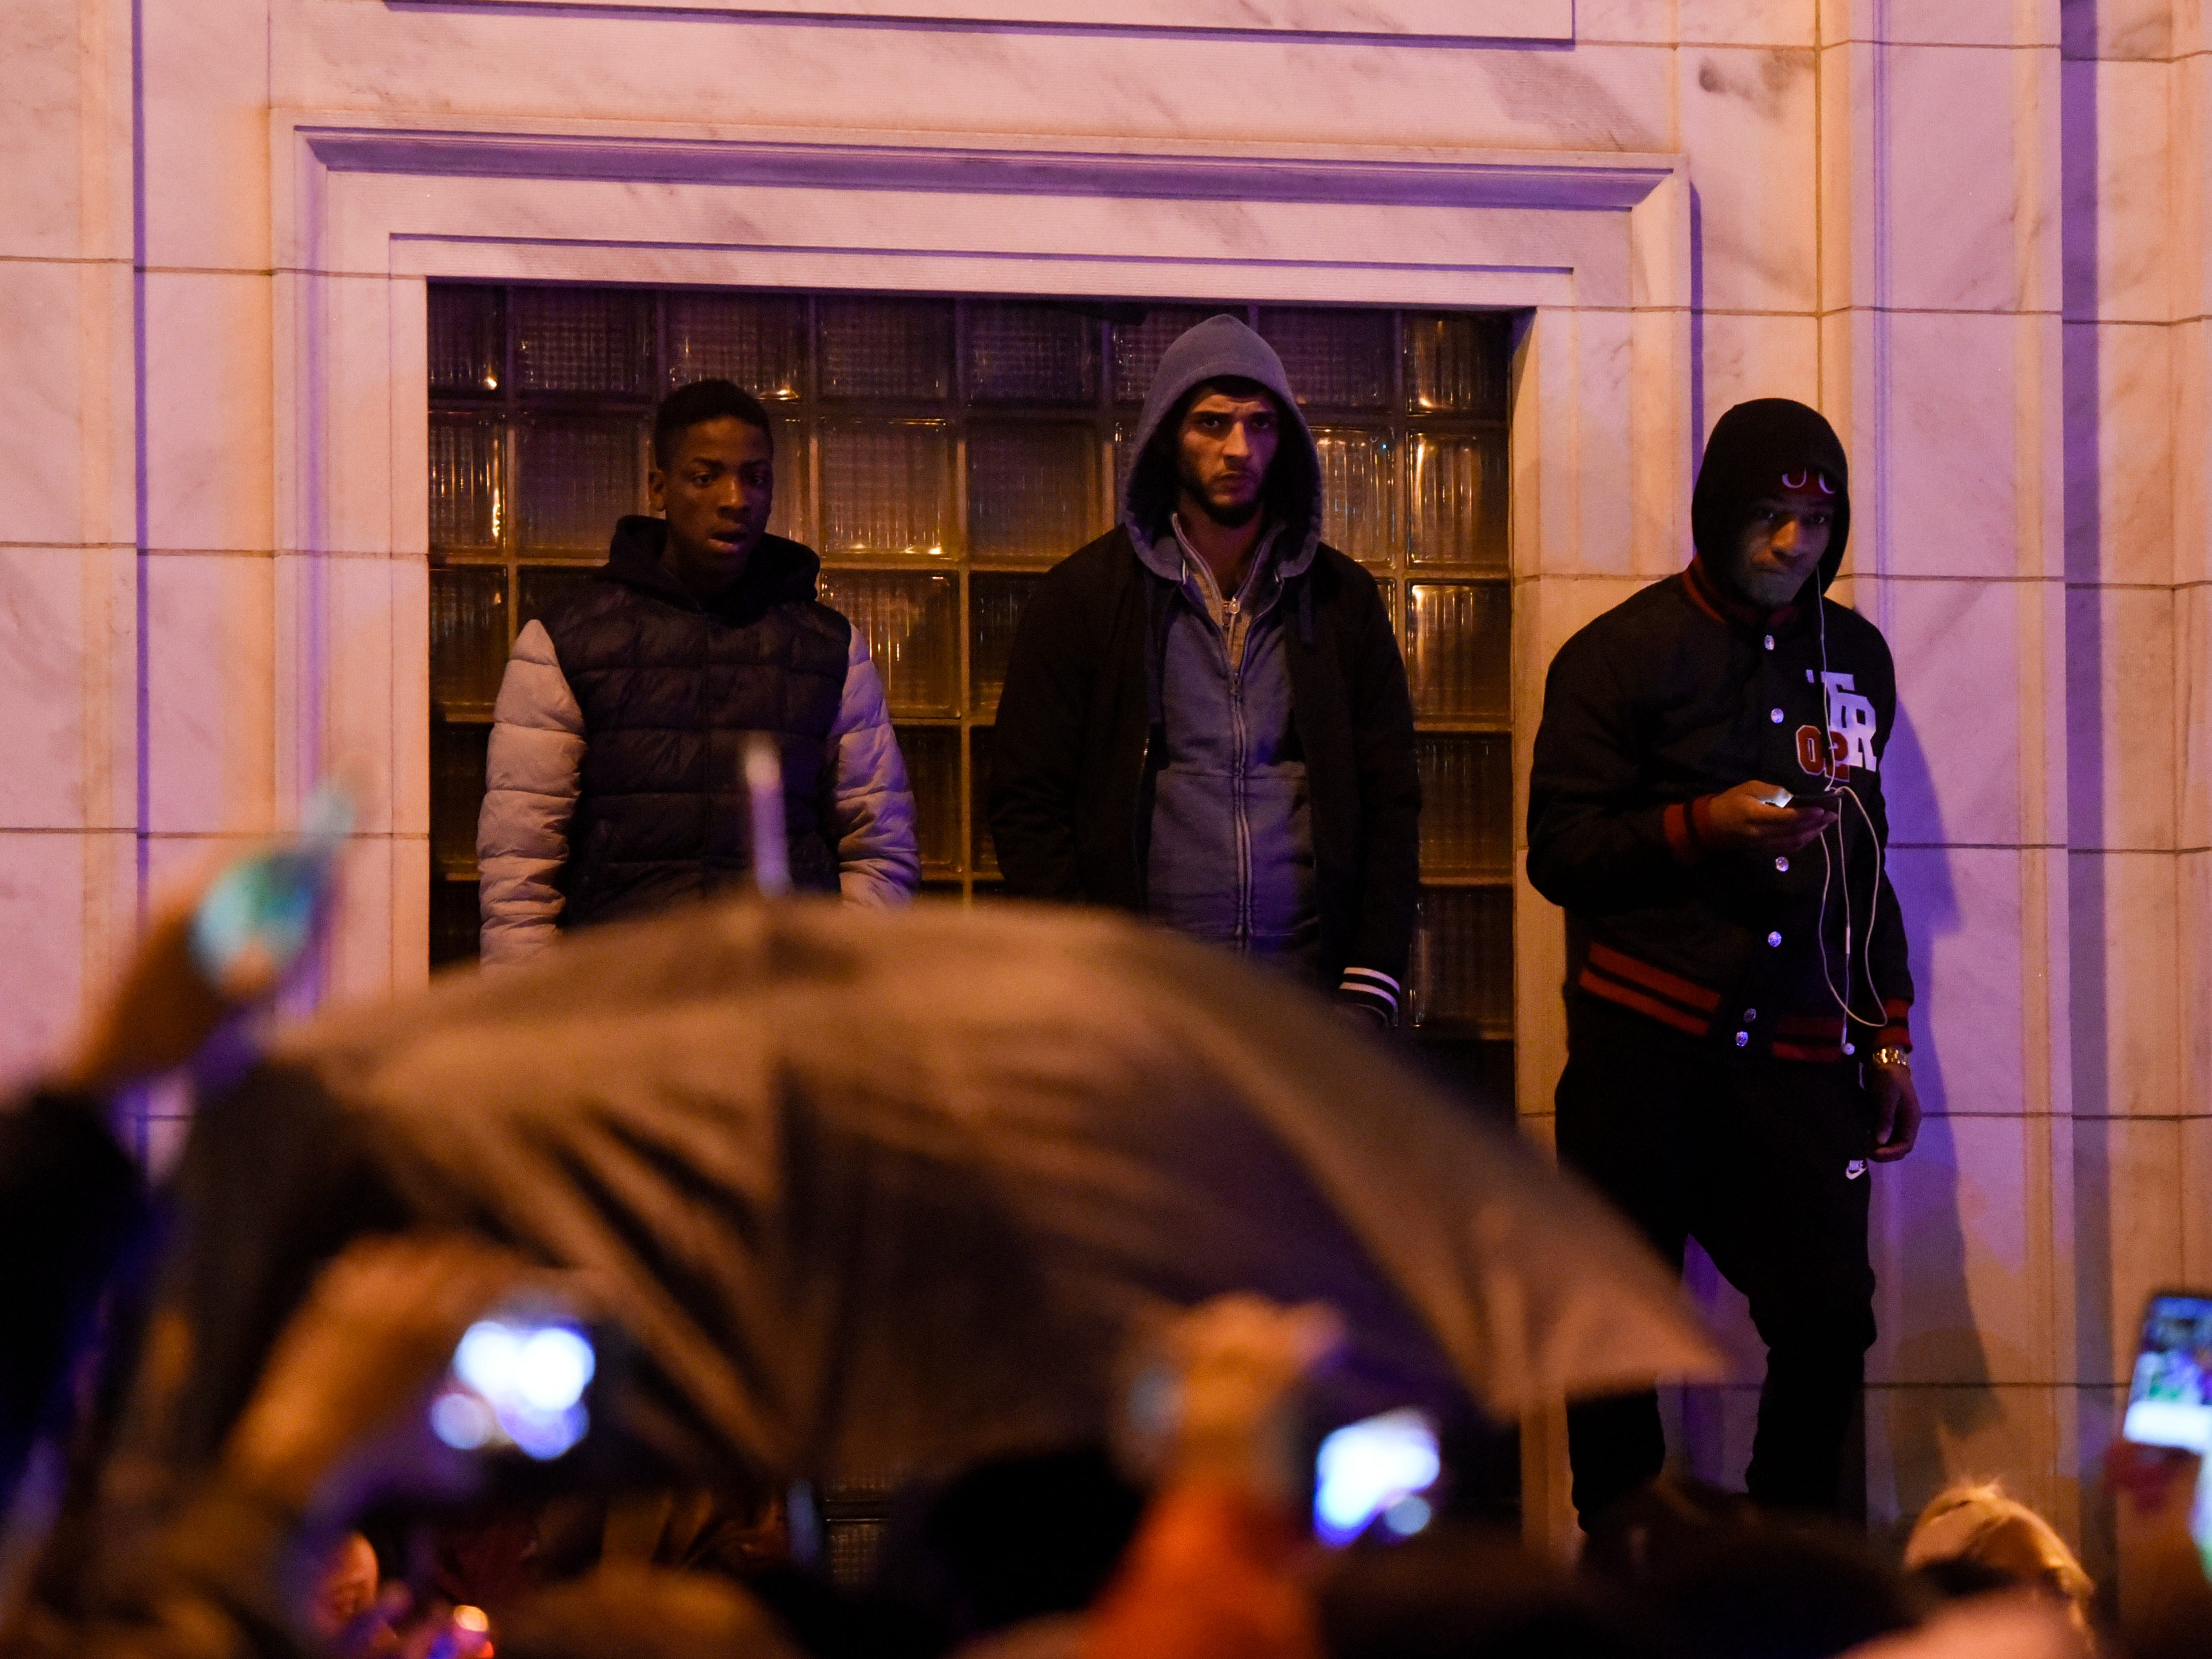 Men stand on a ledge during a protest at Paterson City Hall in reaction to the death of Jameek Lowery on Tuesday, Jan. 8, 2019, in Paterson. Lowery died two days after going on Facebook Live claiming that someone was out to kill him and asking the Paterson Police Department for help.